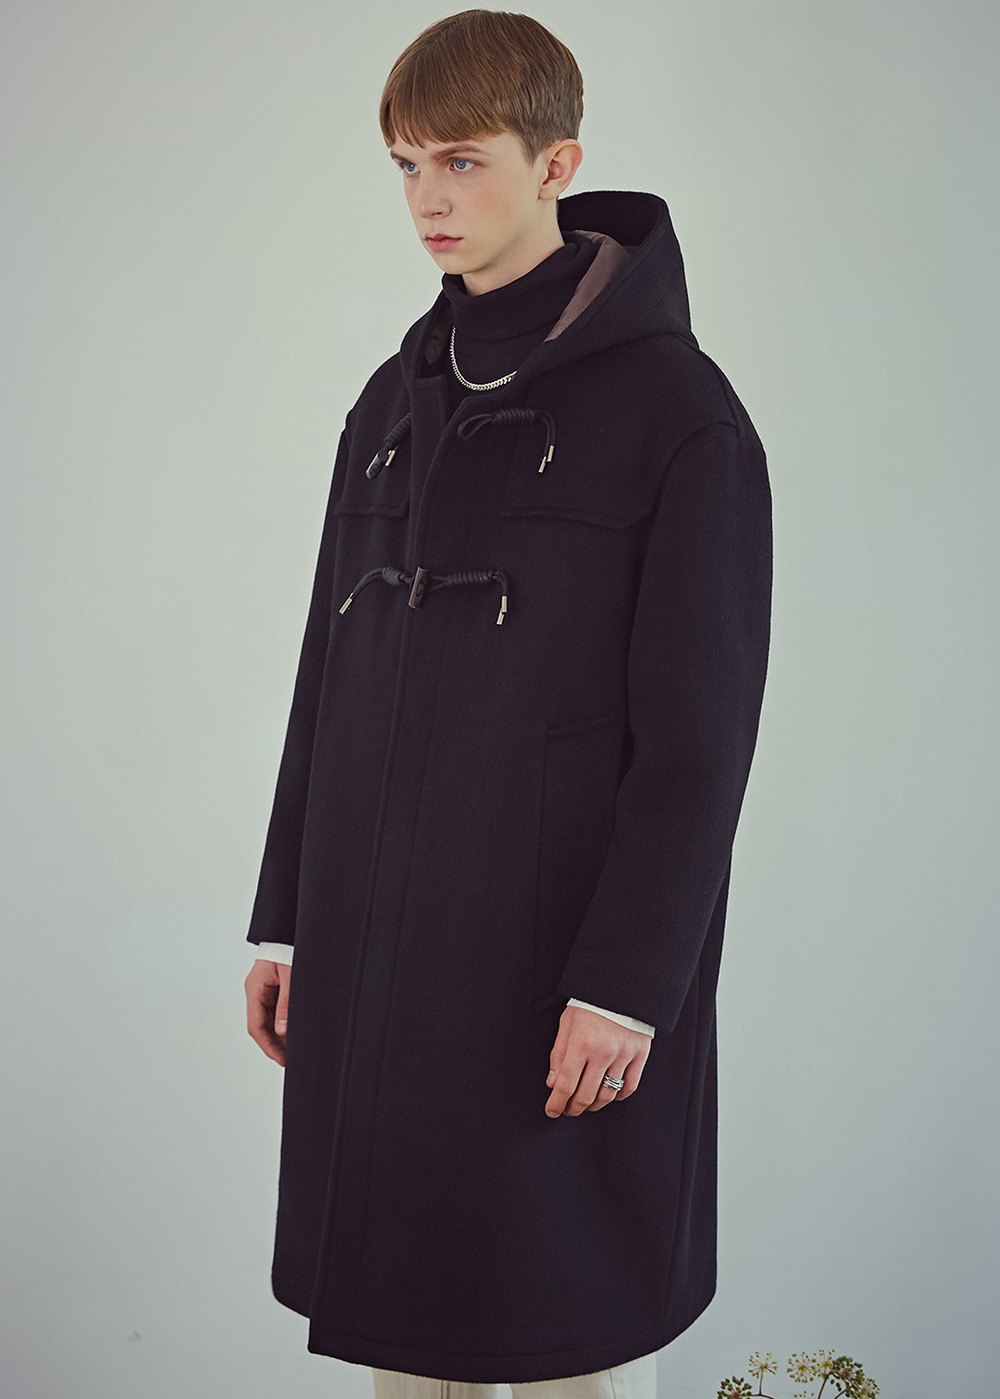 Oversized Wool Dufflecoat - Matt Black